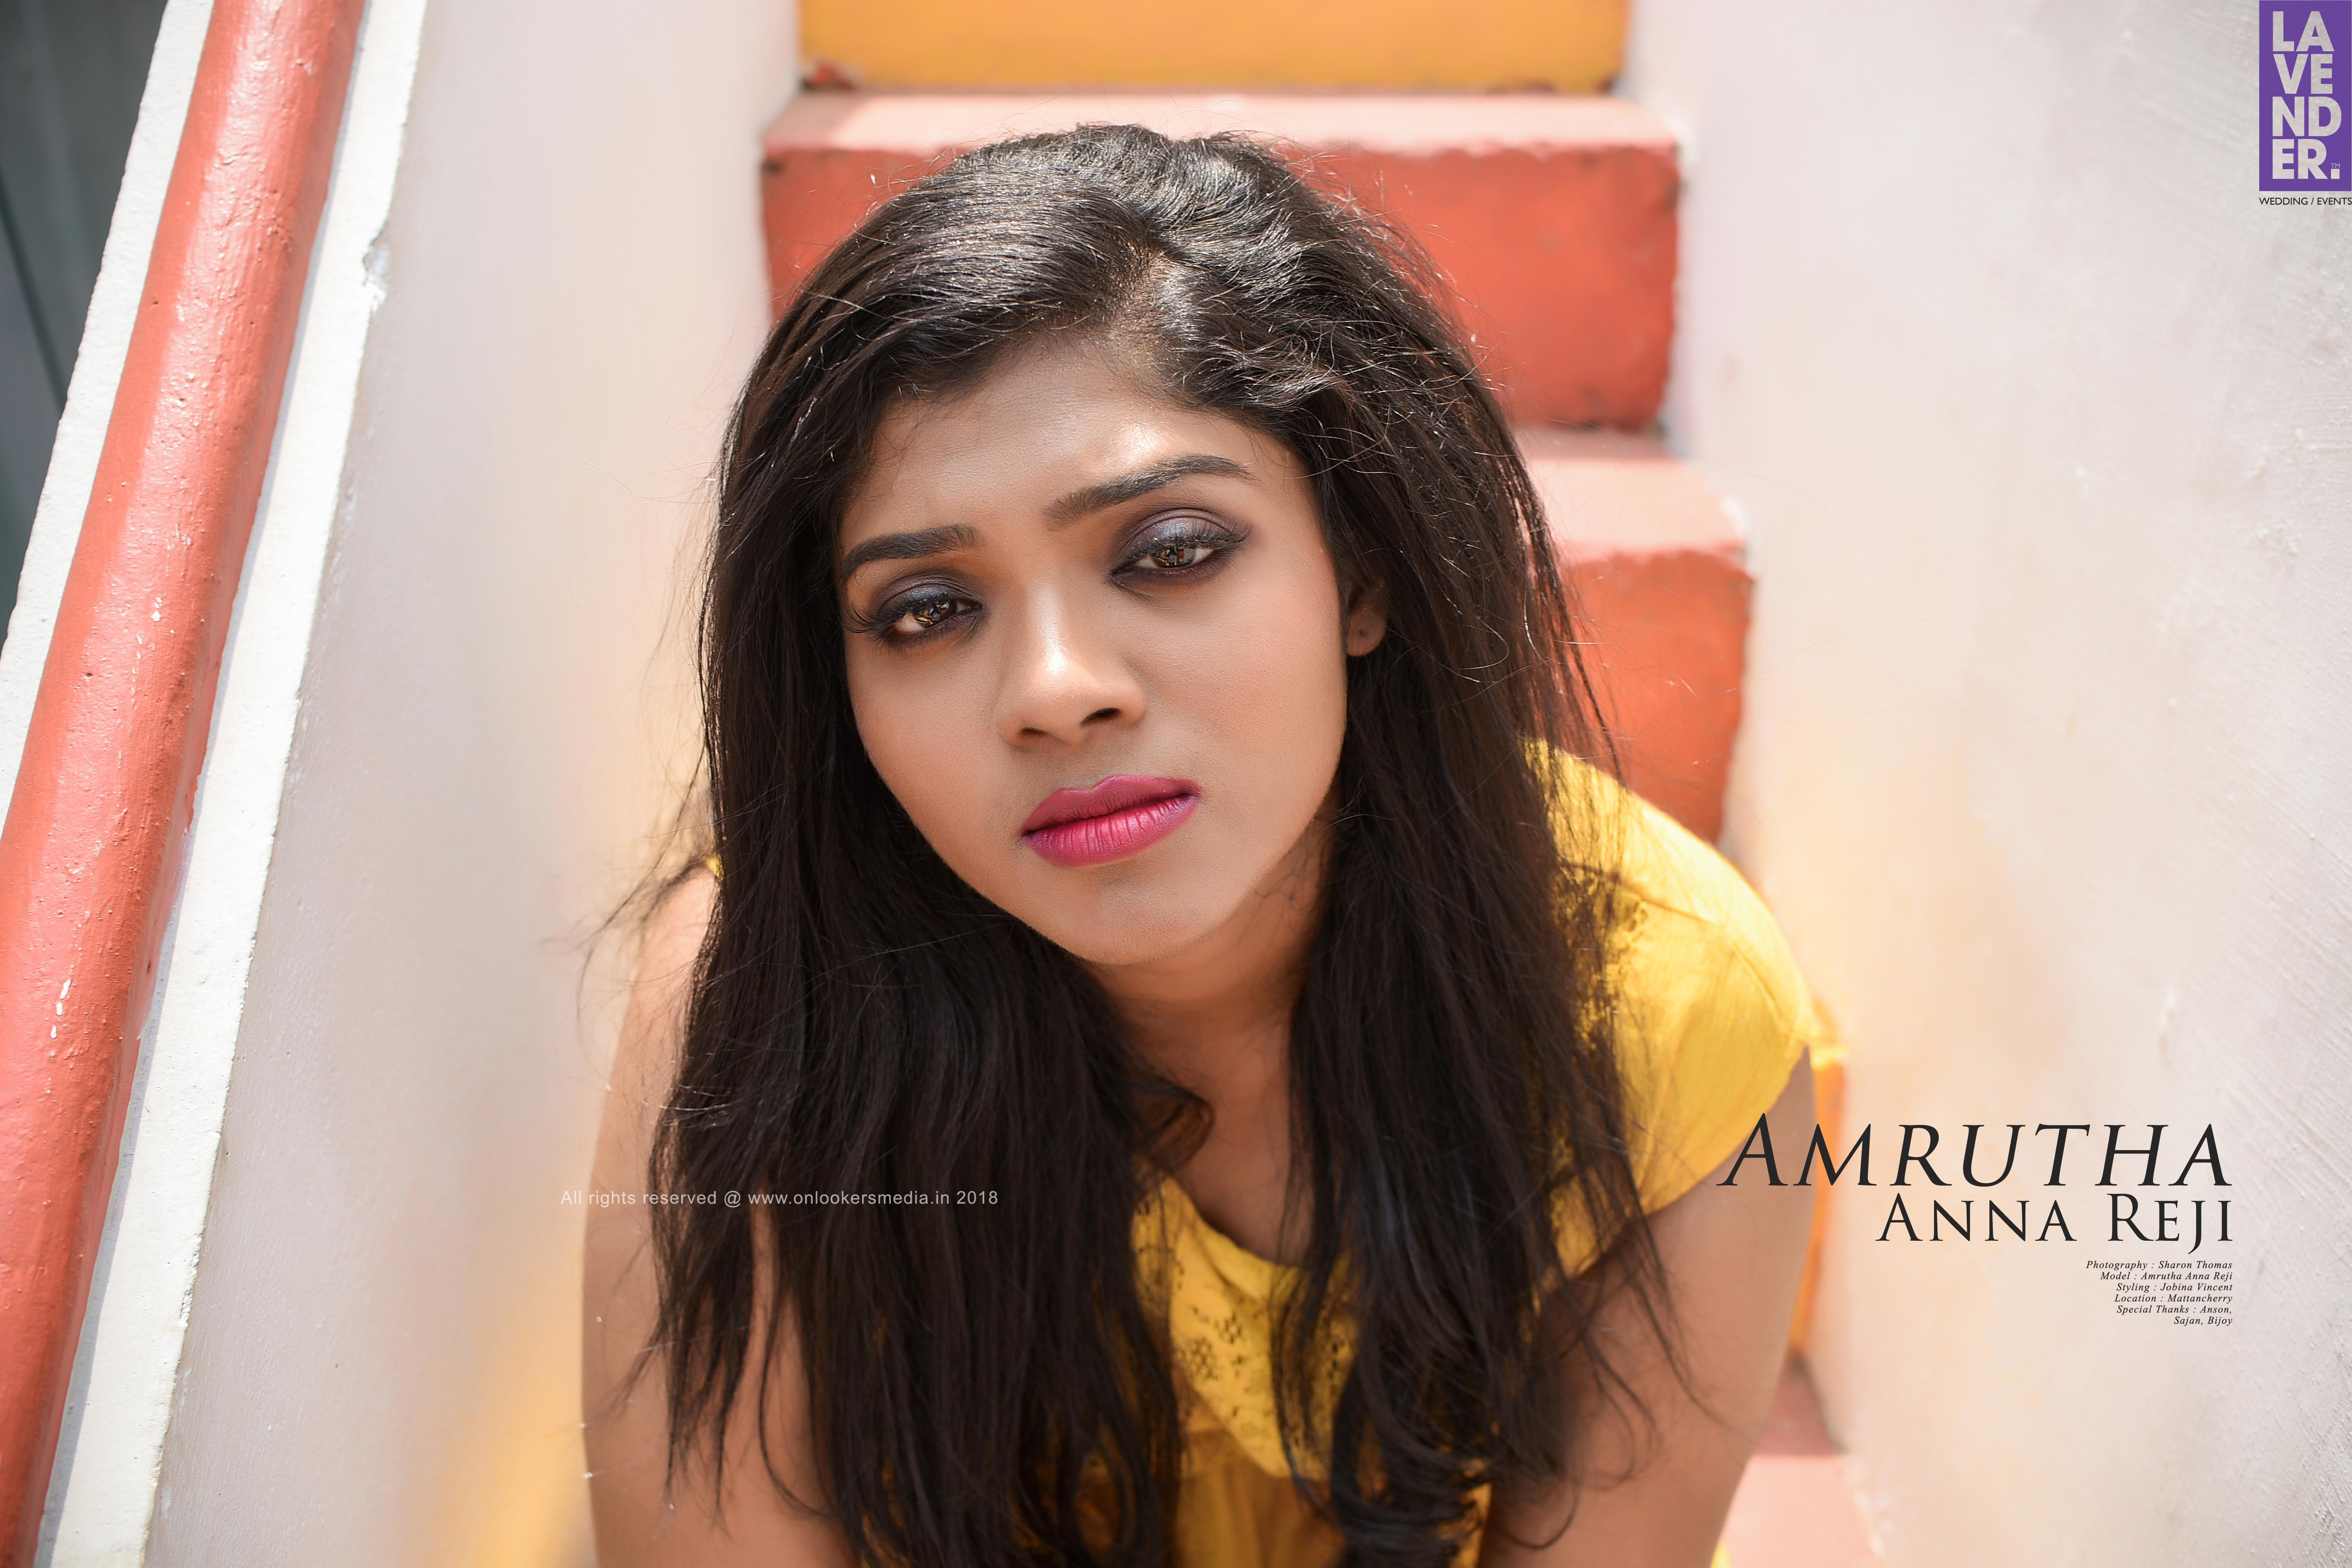 http://onlookersmedia.in/wp-content/uploads/2018/03/amrutha-anna-reji-make-over-stills-images-photos-11.jpg